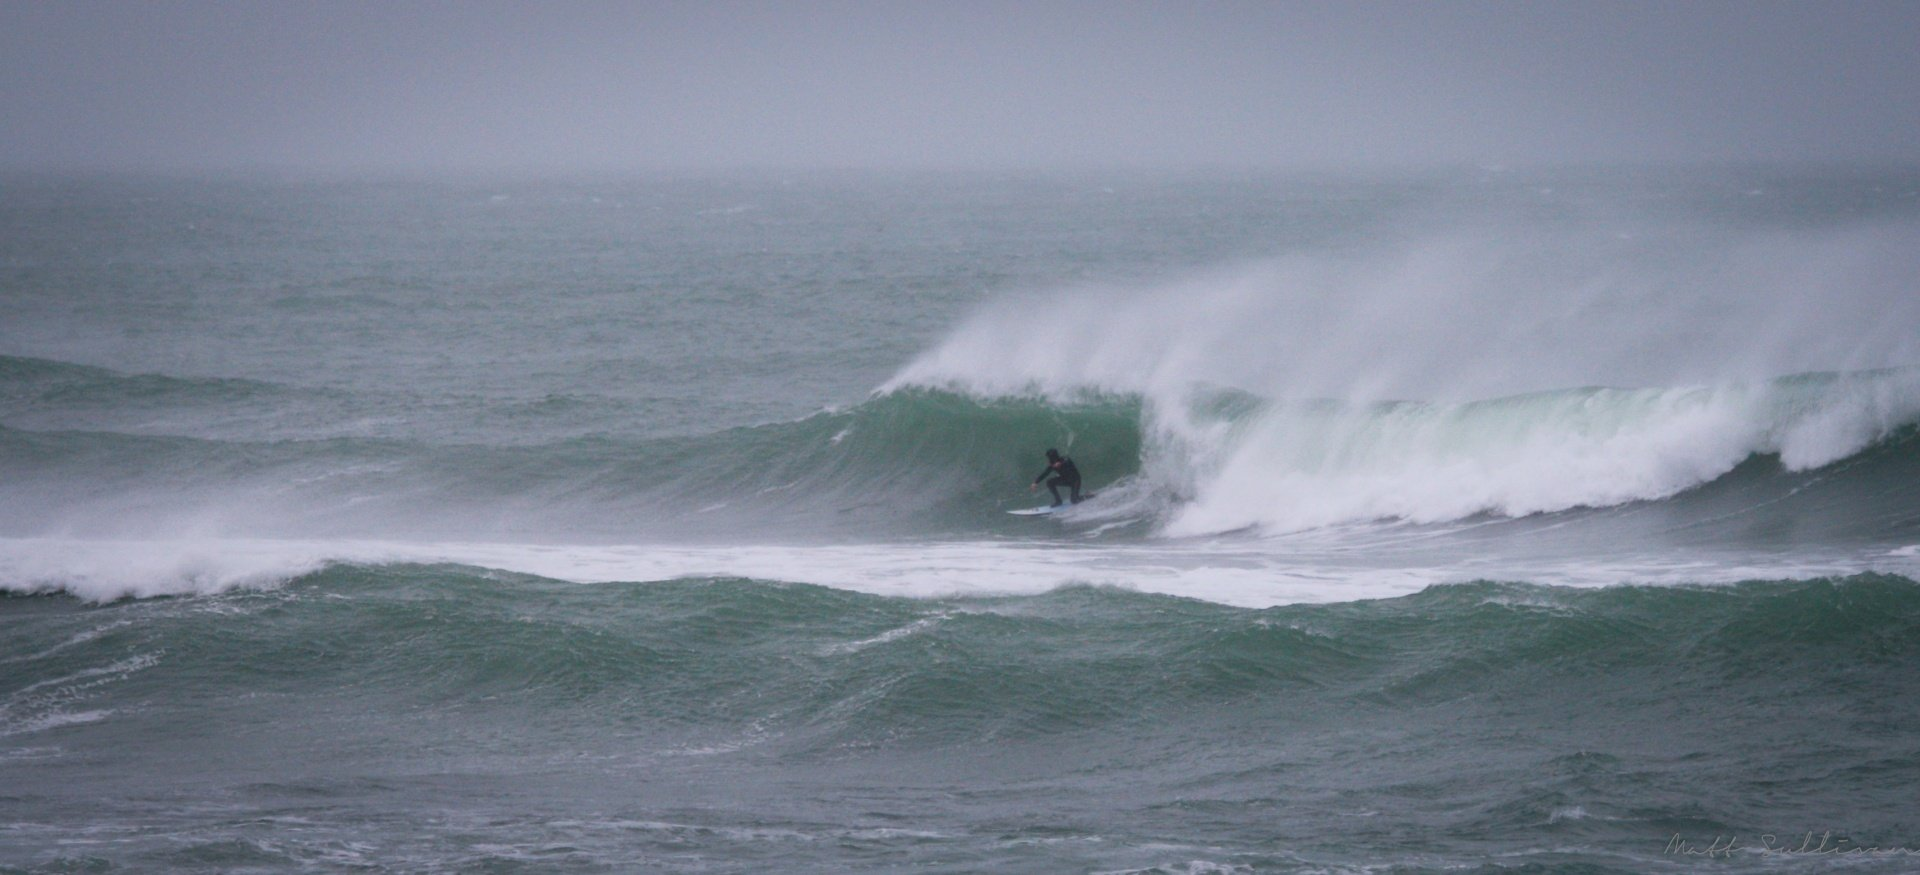 Matt Sullivan's photo of Jersey